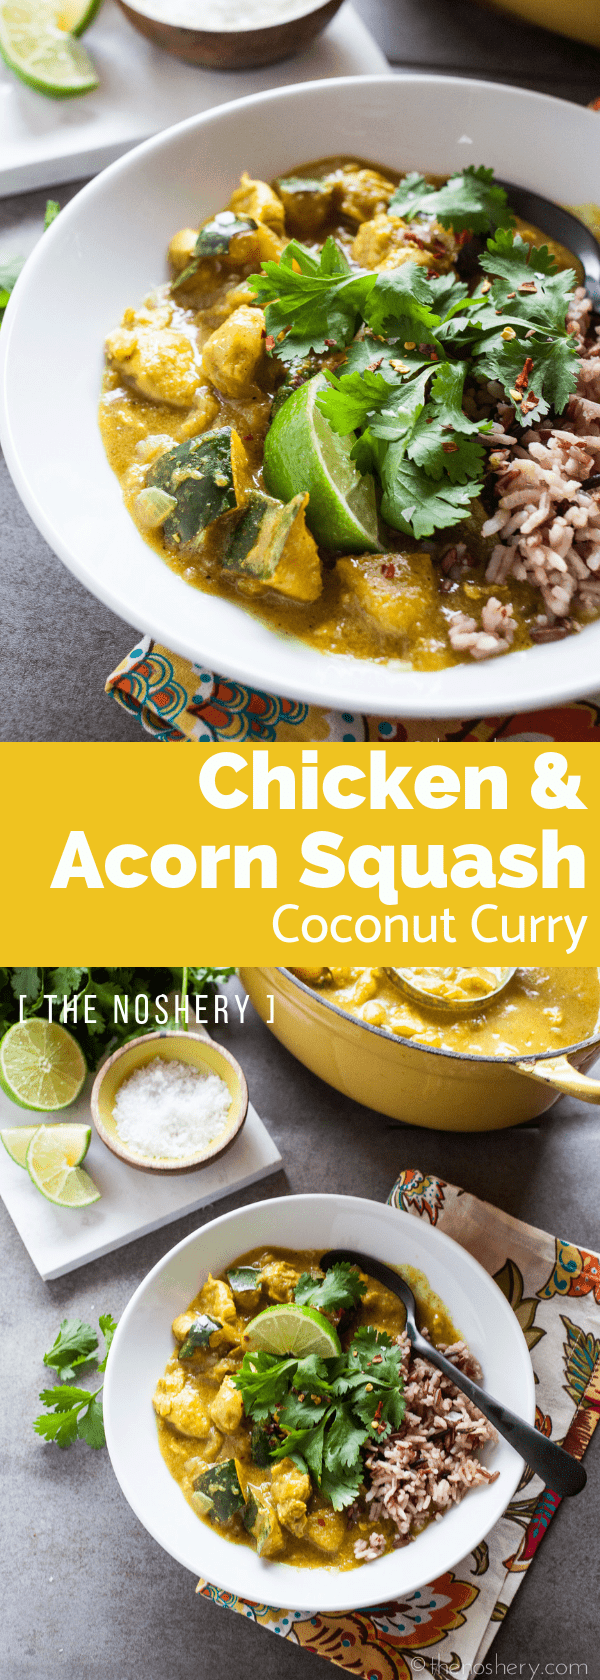 Chicken and Acorn Squash Coconut Curry | This curry is fabulous on the first day and even better on the second day. Enjoy it by itself or served over rice or cauliflower rice. | The Noshery